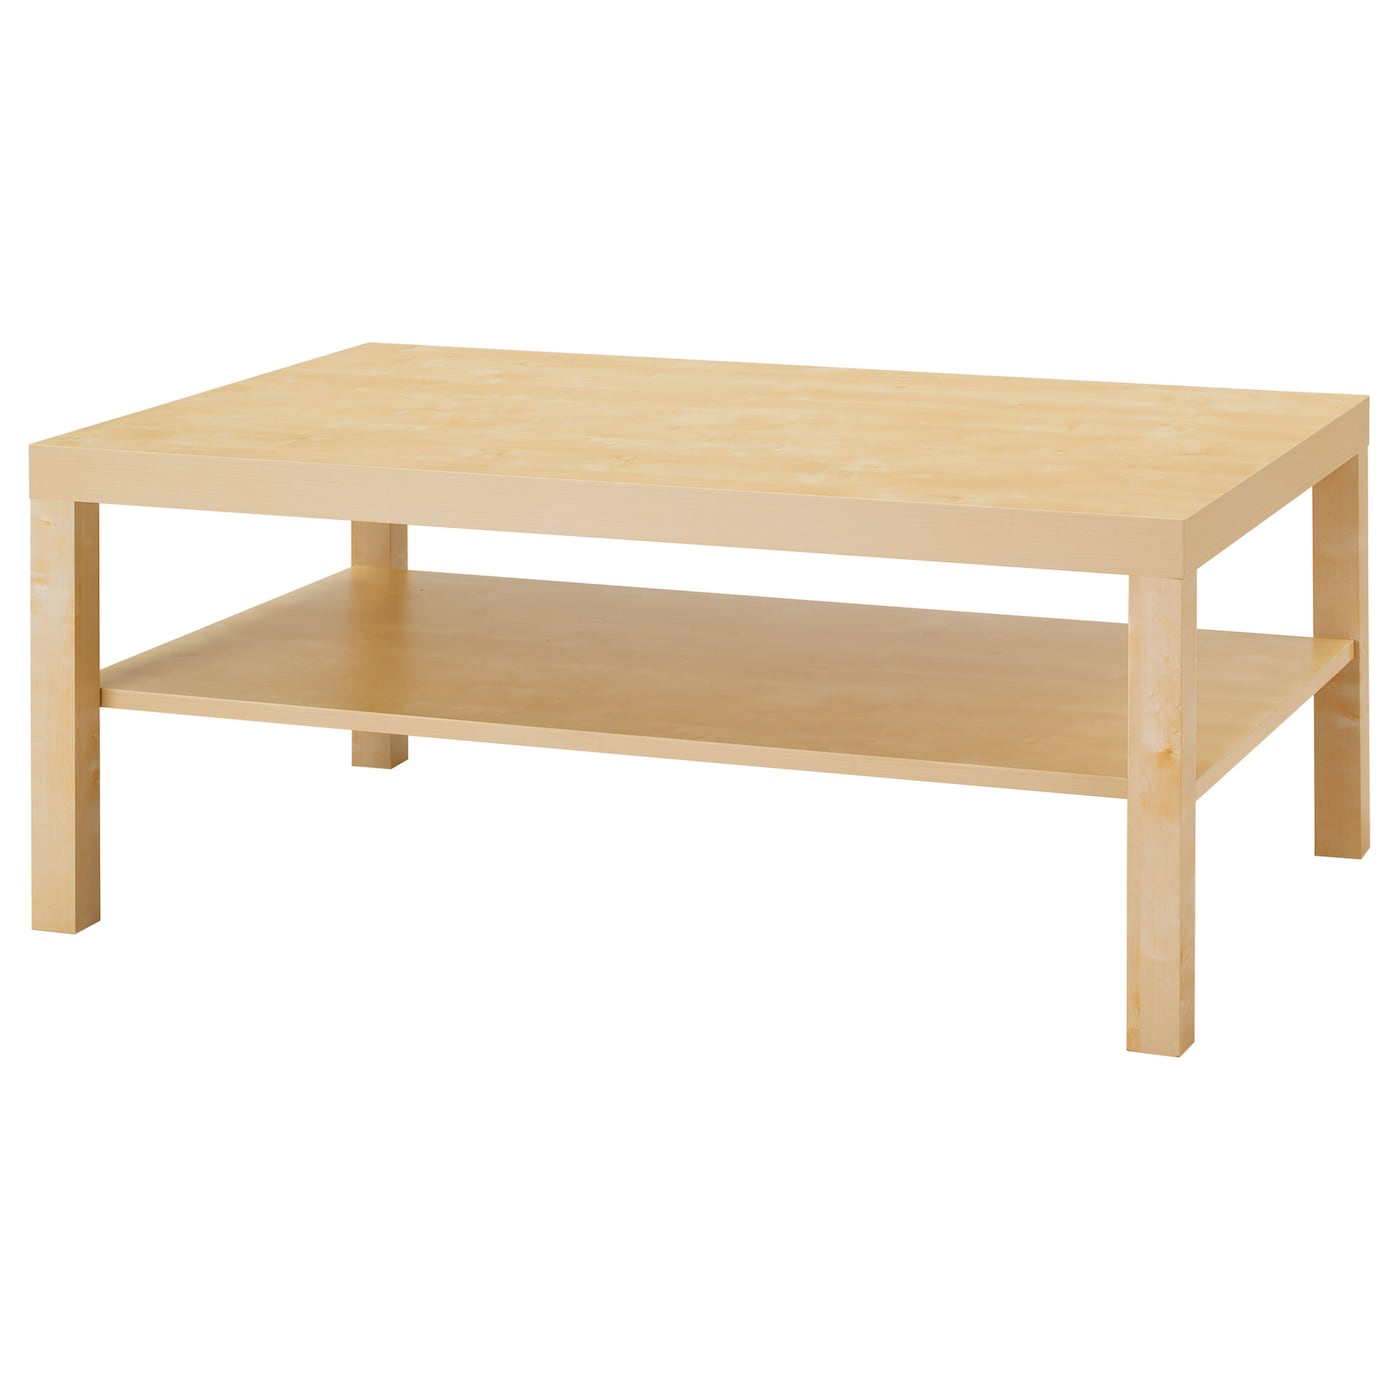 Http Www Ikea Com Gb En Products Tables Coffee Side Tables Lack Coffee Table Birch Effect Art 20104290